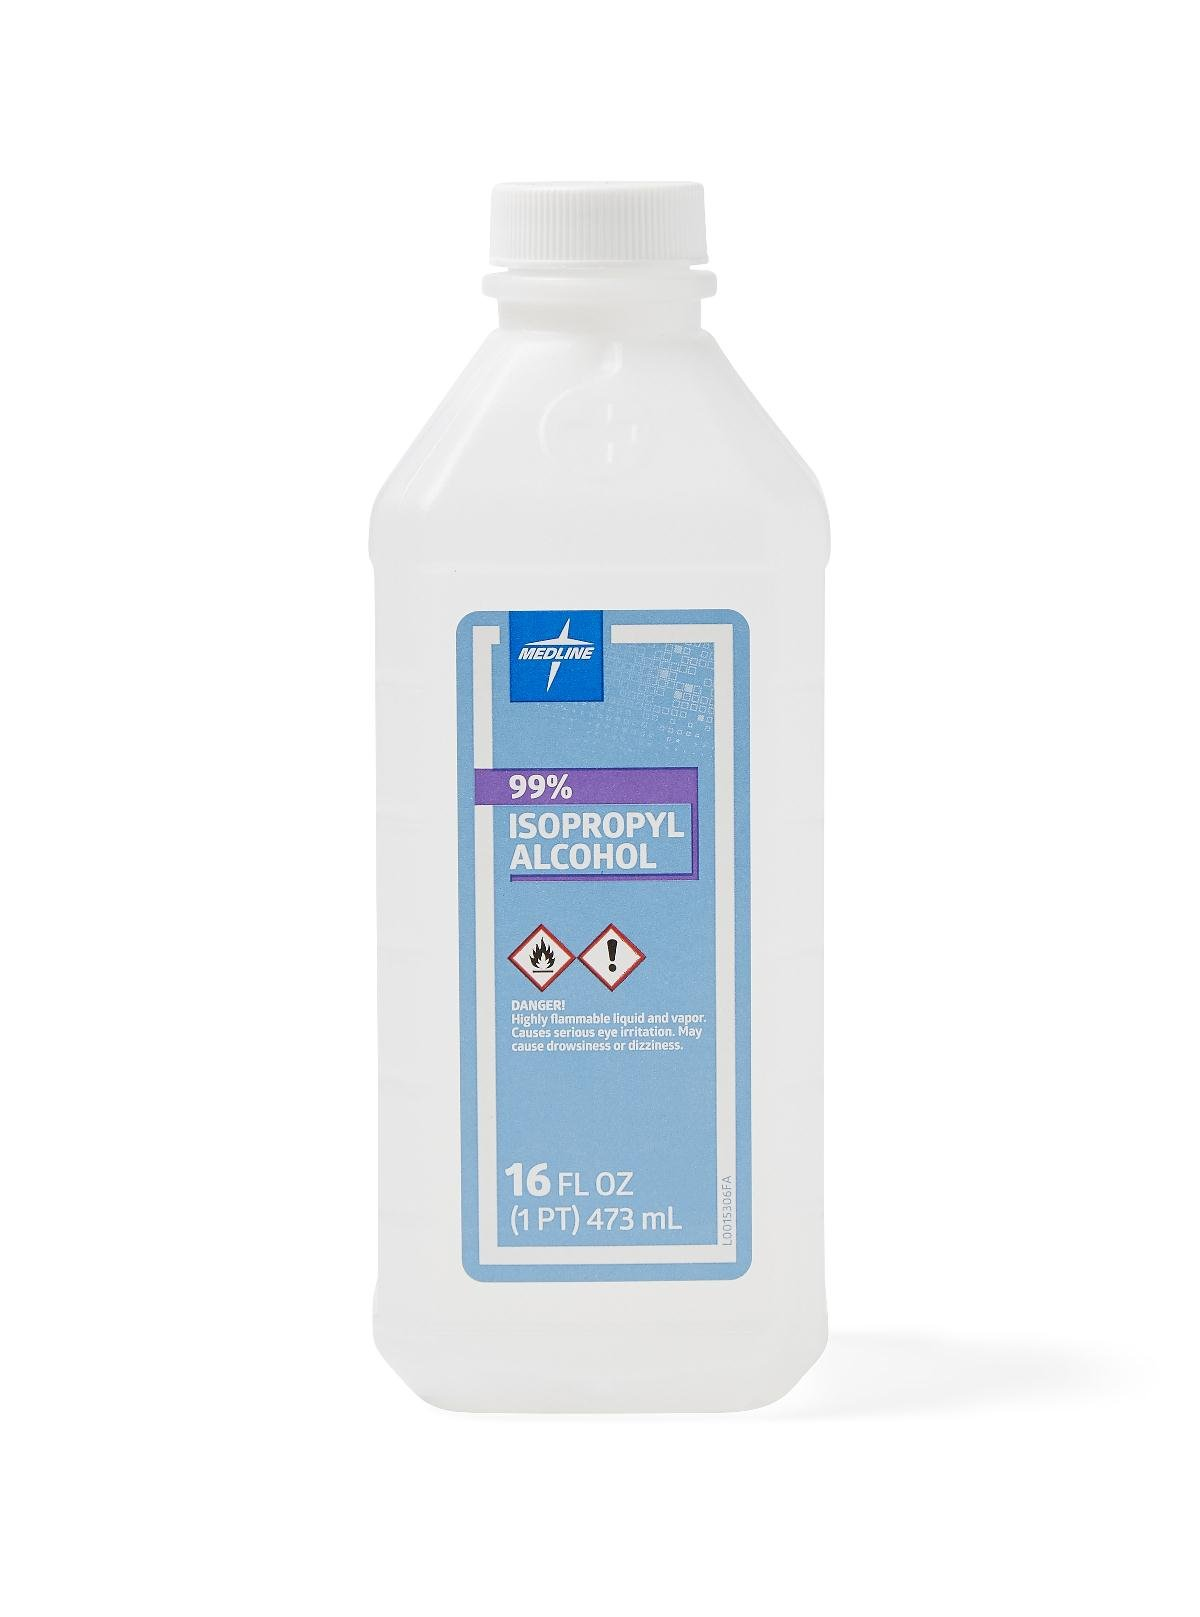 Medline MDS098013 Isopropyl Alcohol Antiseptic Solution, 99% Alcohol, 16 ounces, (Case